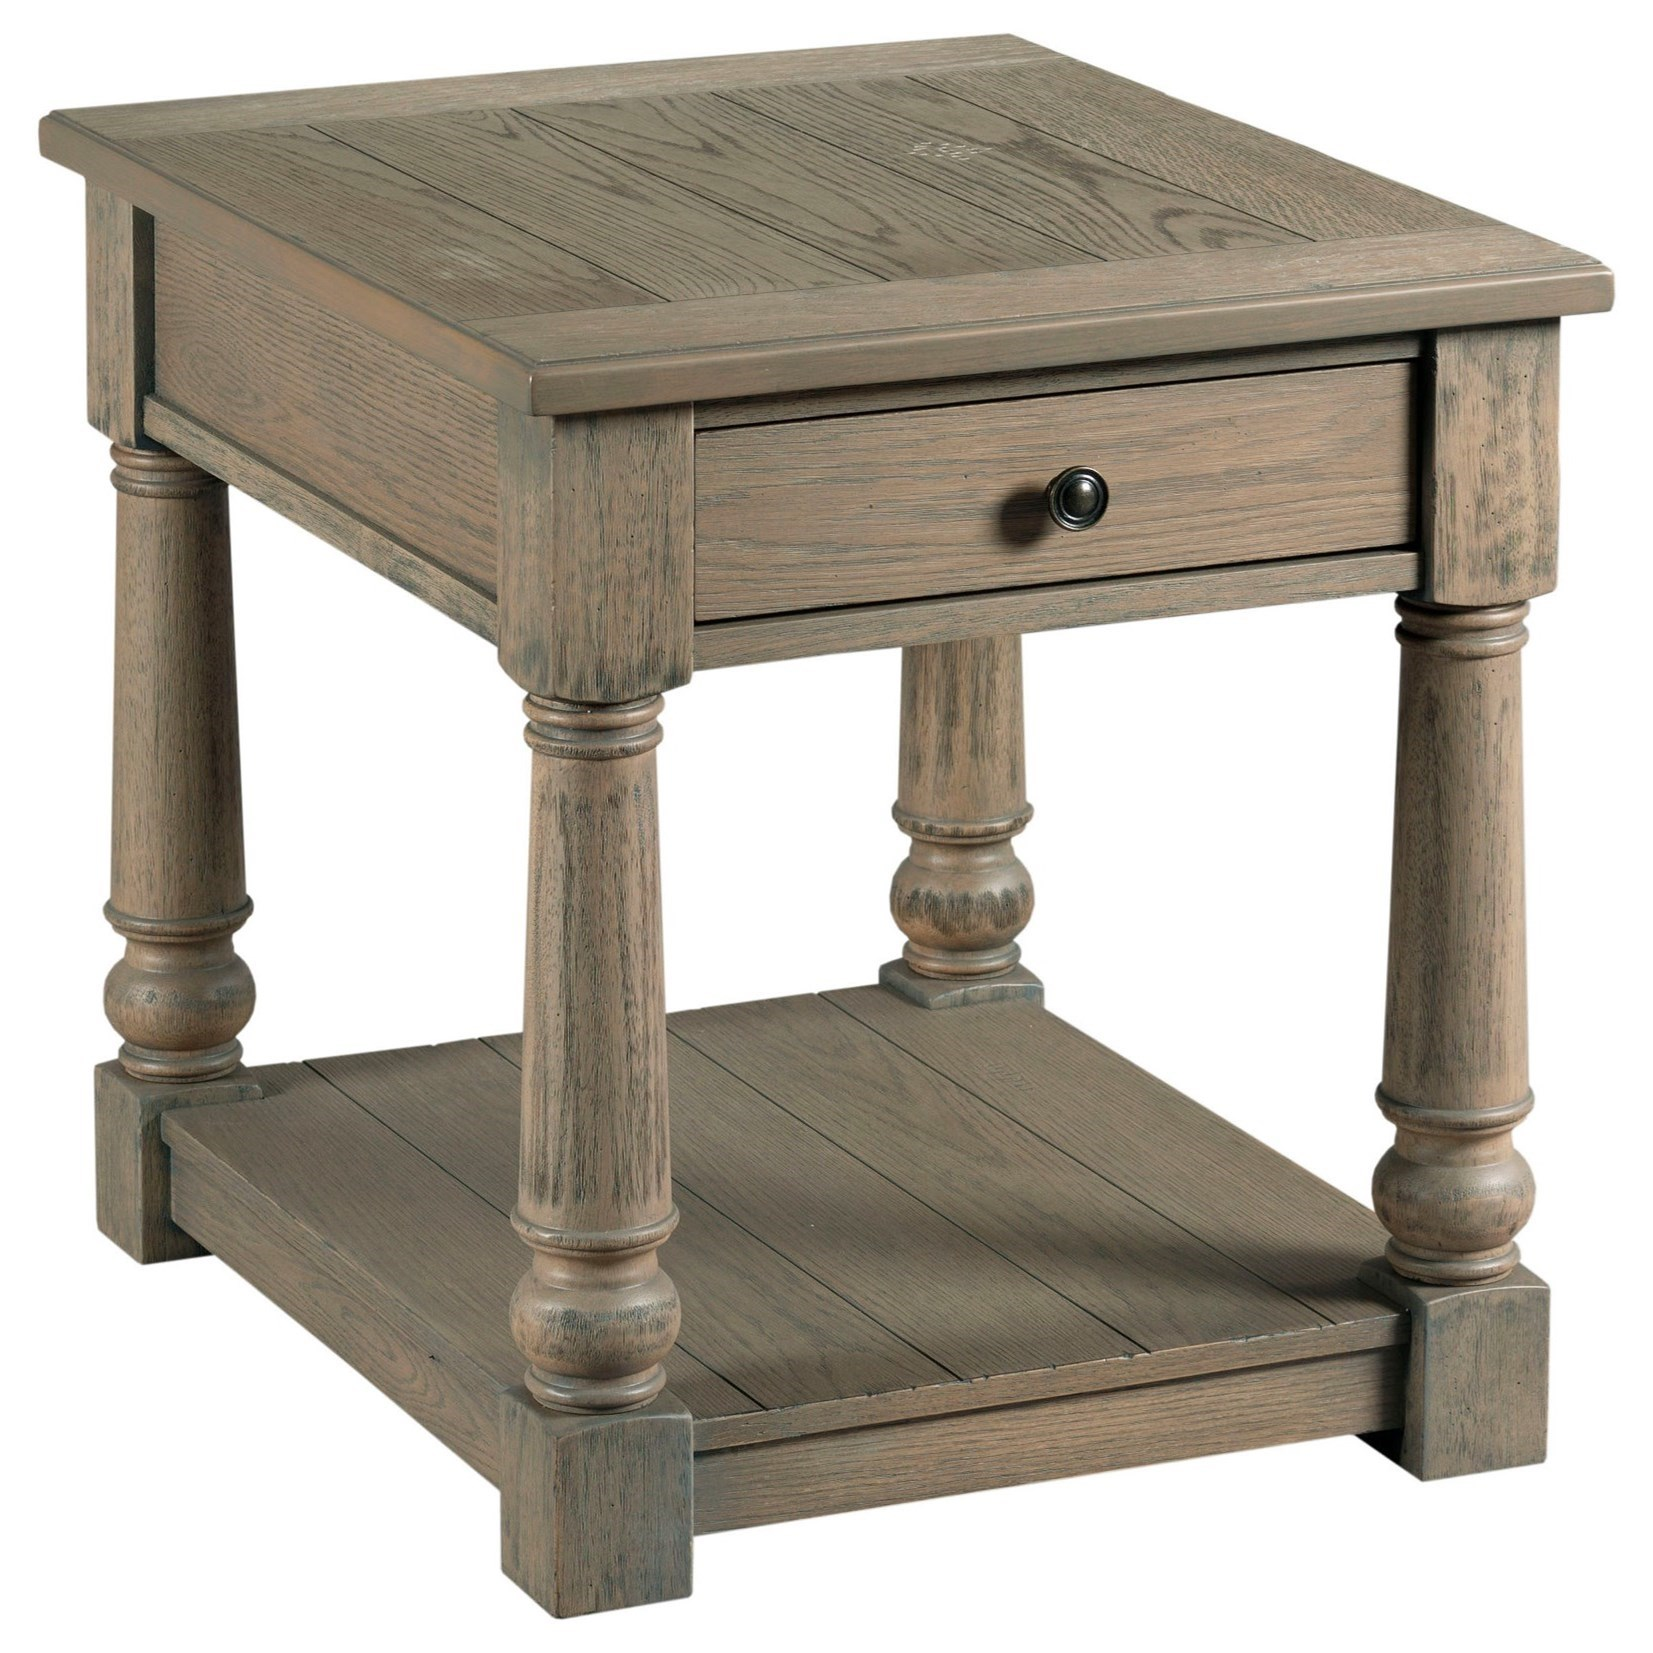 Outland Rectangular Drawer End Table by England at Virginia Furniture Market